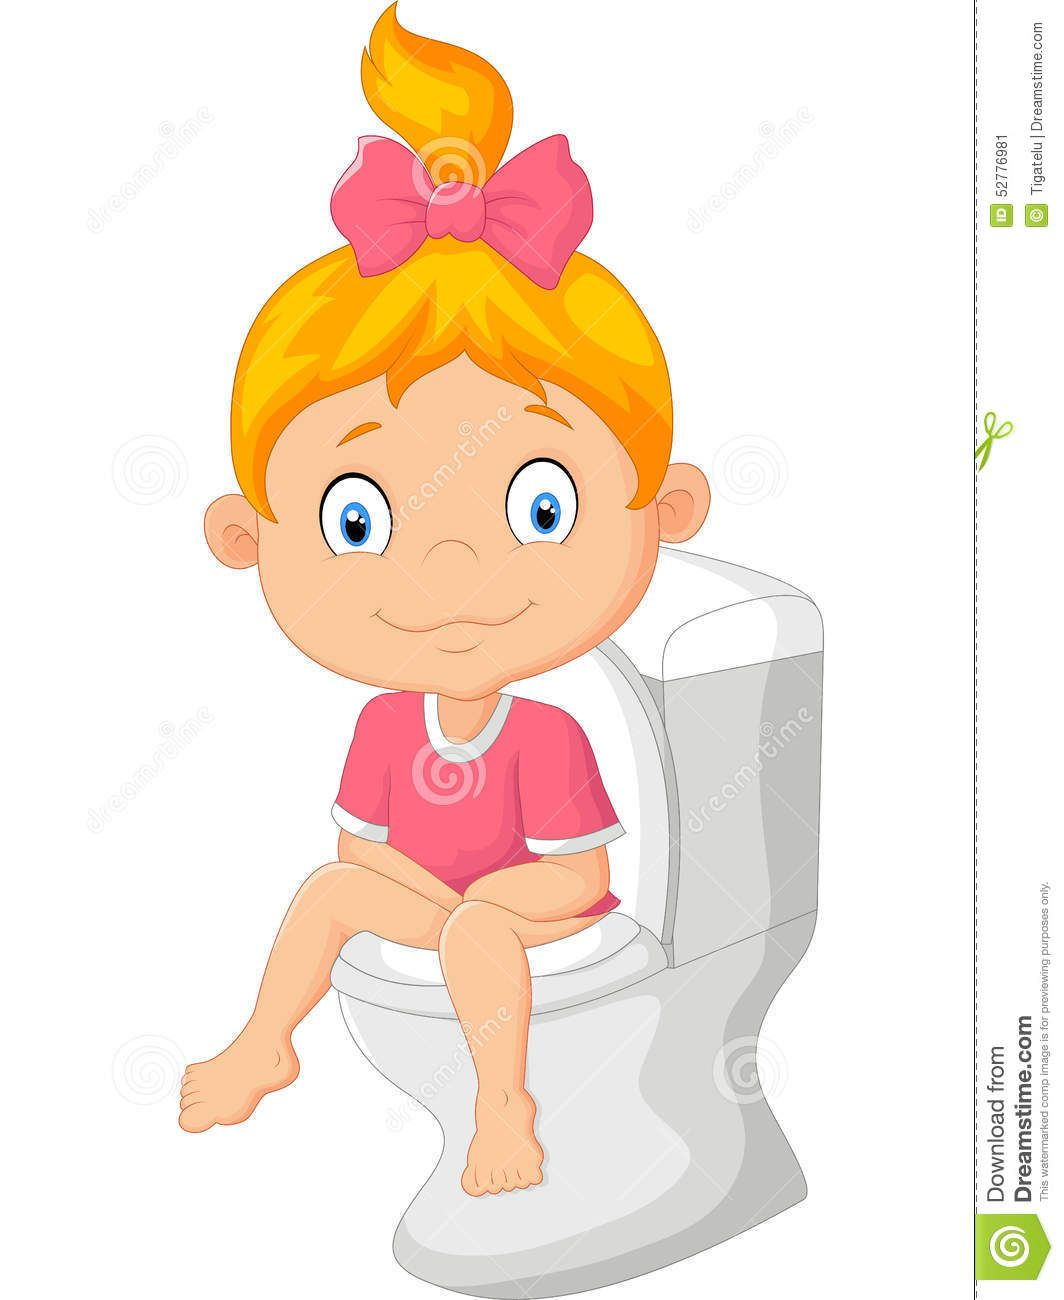 Image result for potty girl cartoon.